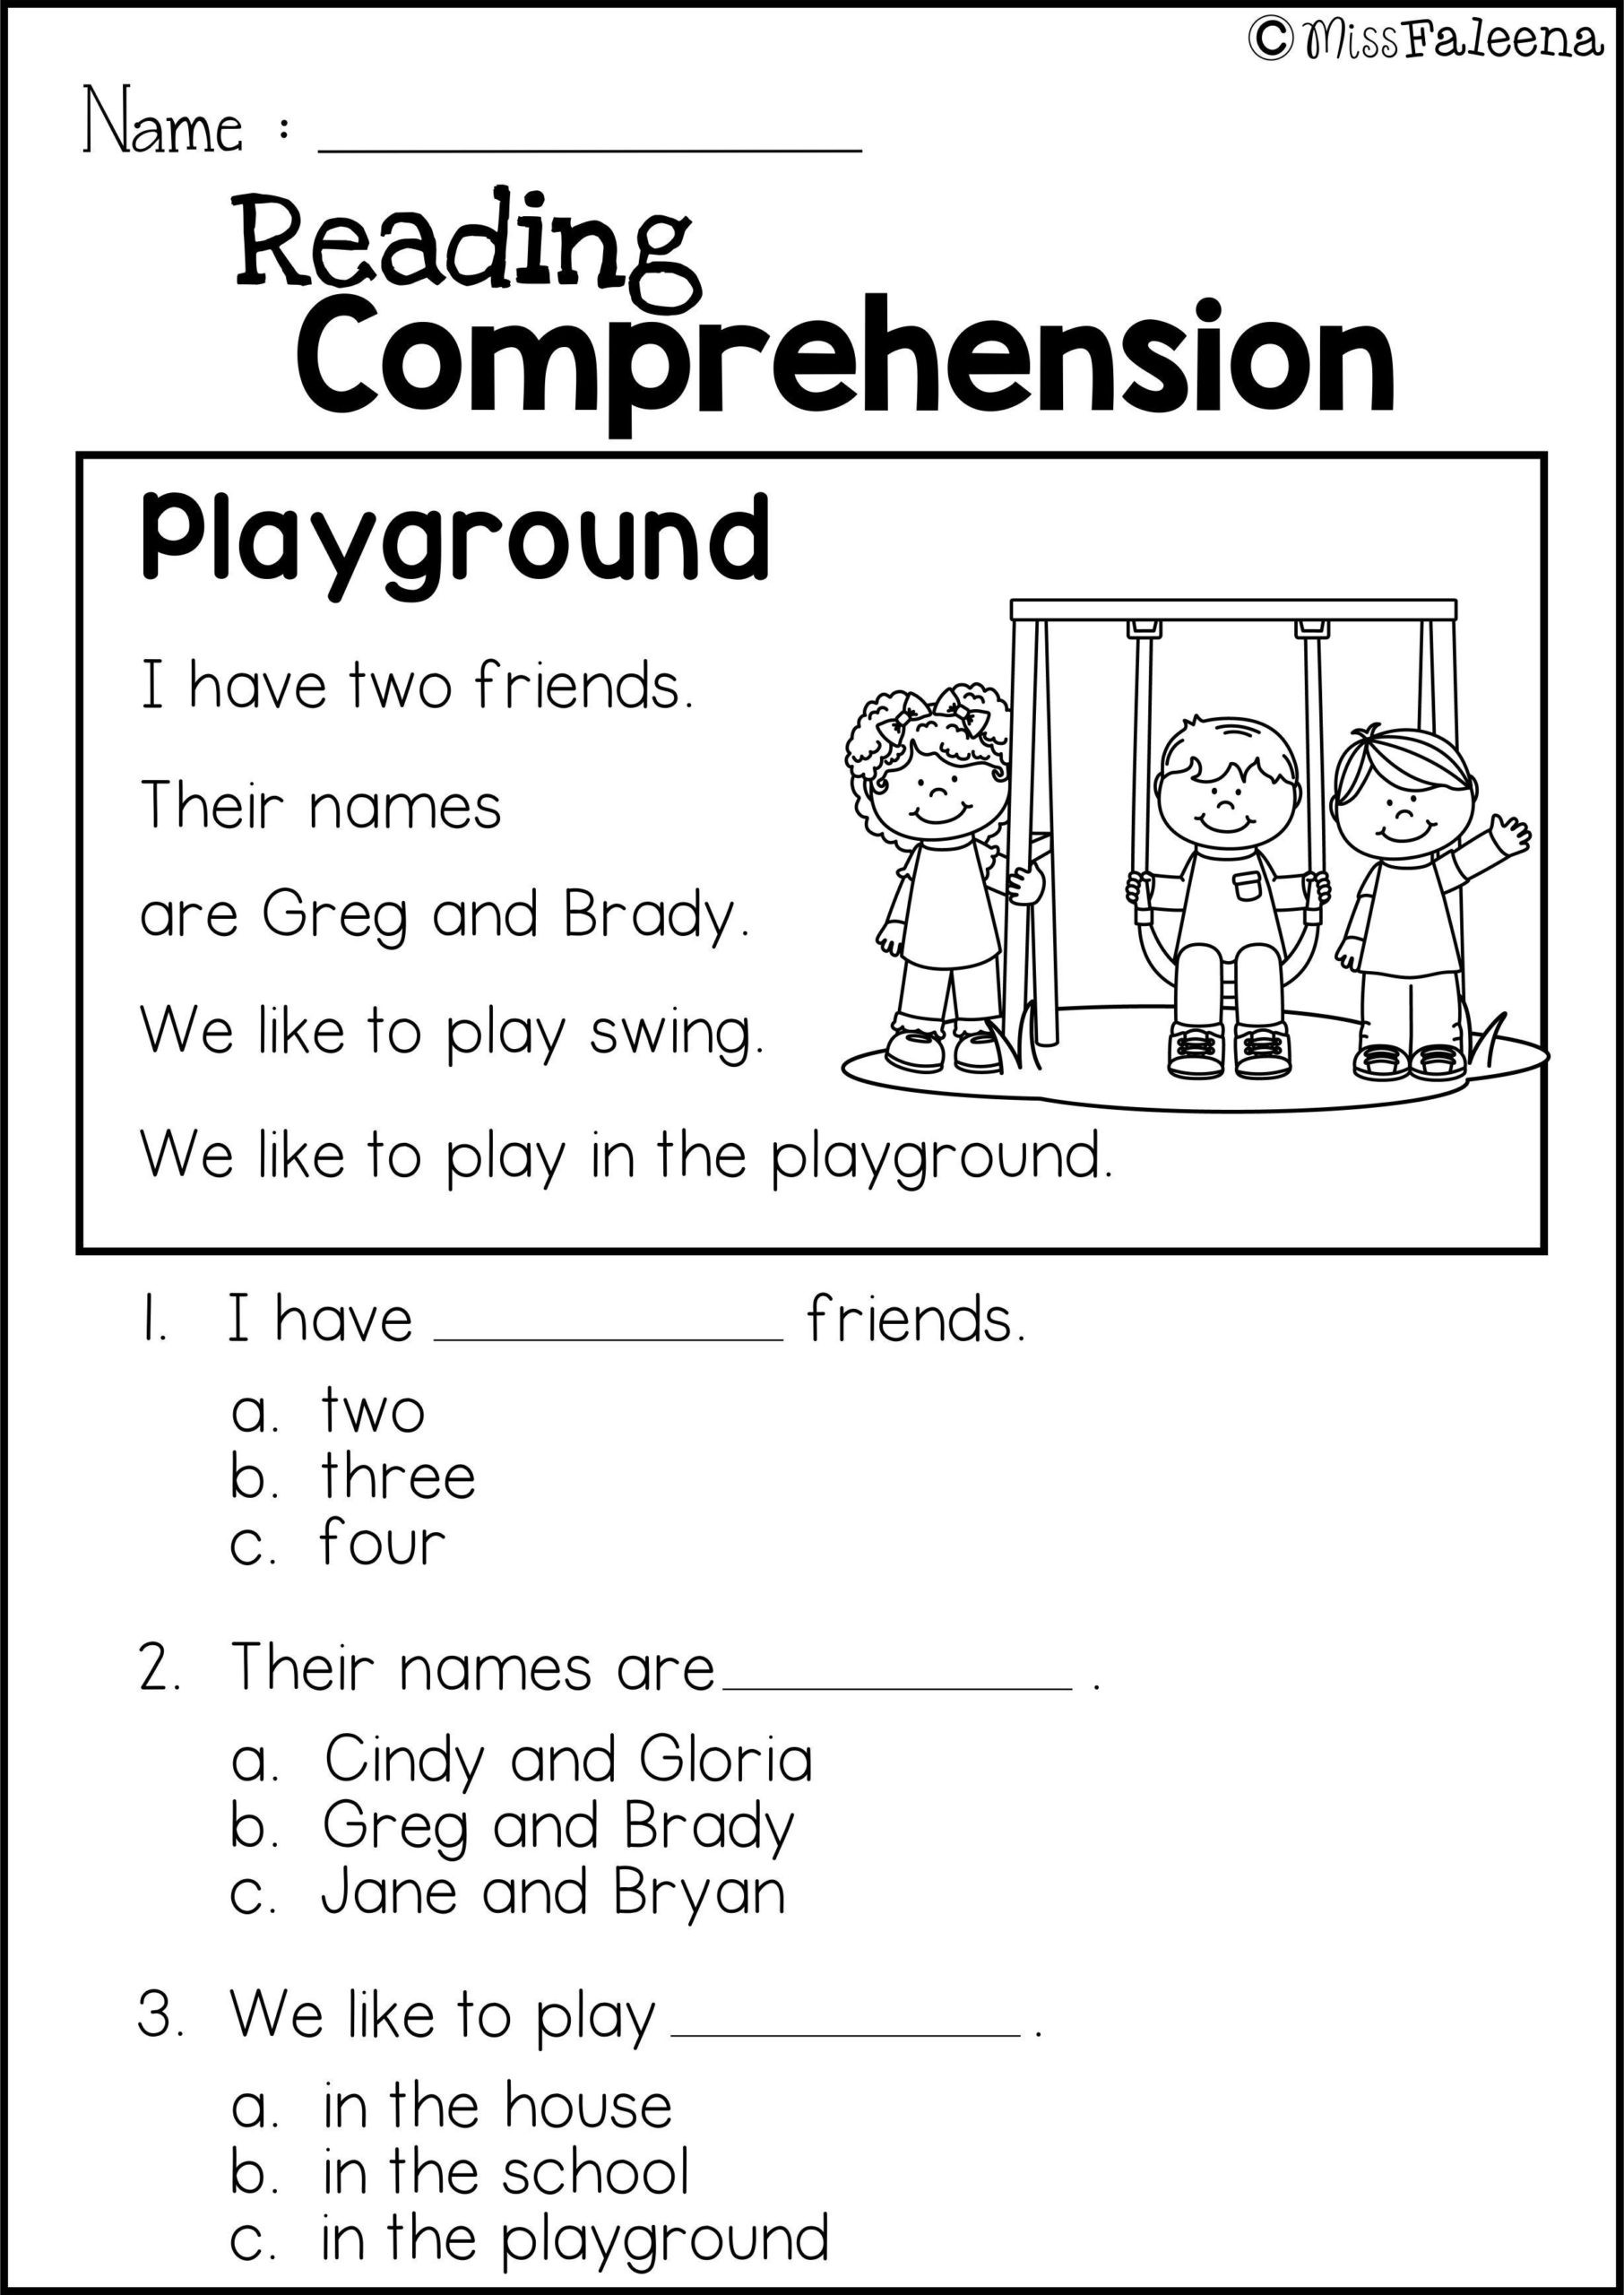 2nd Grade Comprehension Worksheet Math Worksheet Printable Reading Prehension for Second